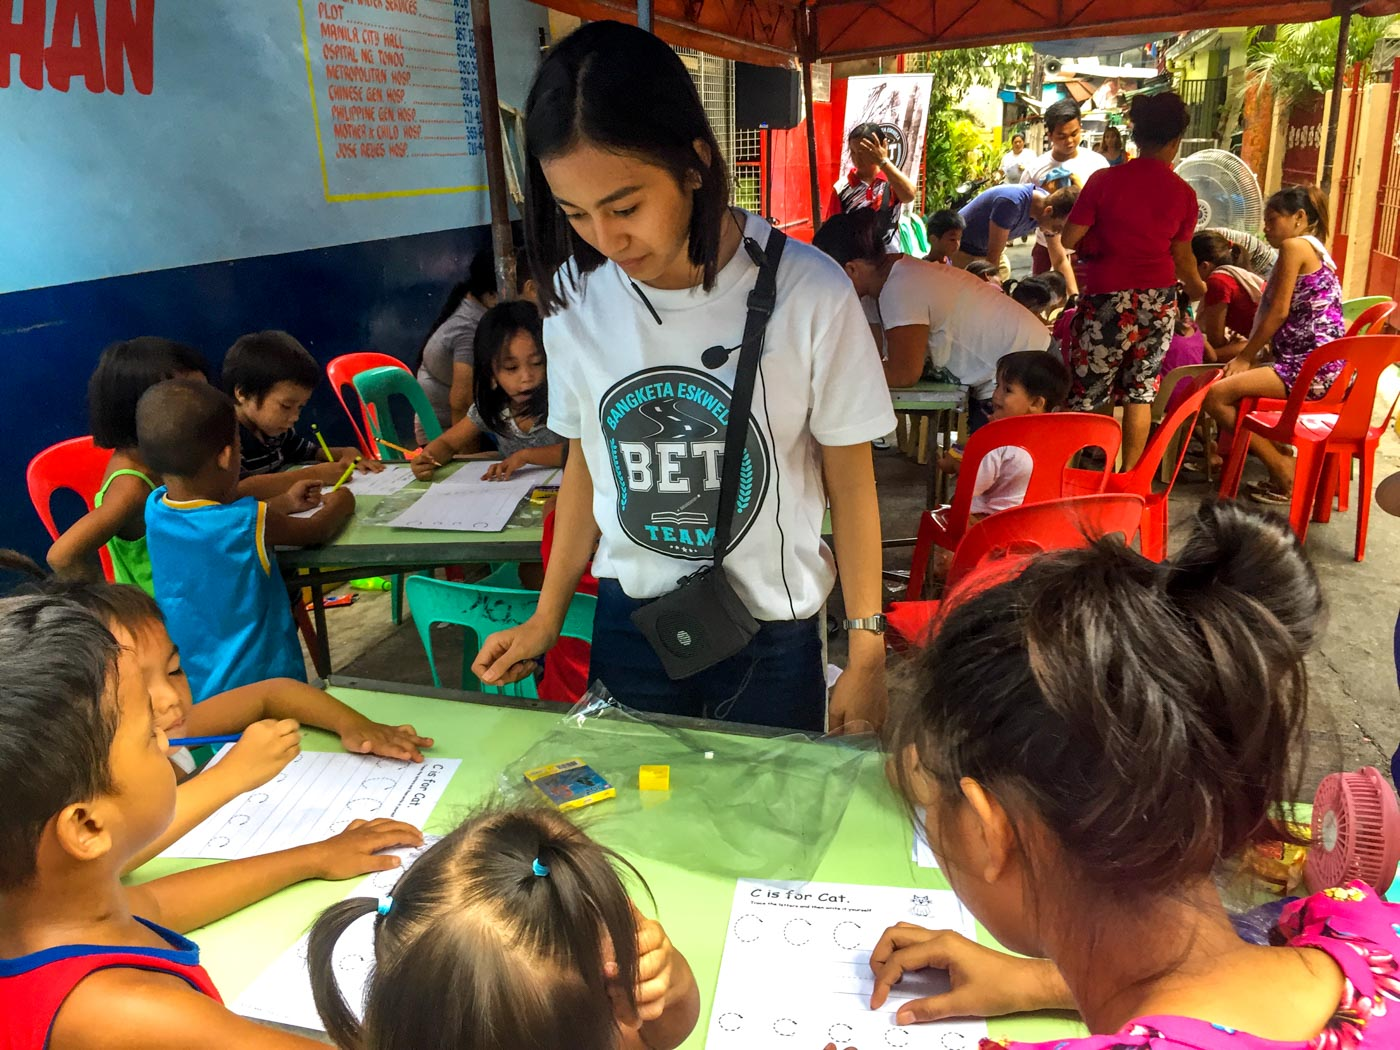 THE TUTOR. Dara Mae Tuazon oversees the students' worksheets and gives them words of encouragement to do their best. Photo by Luisa Jocson